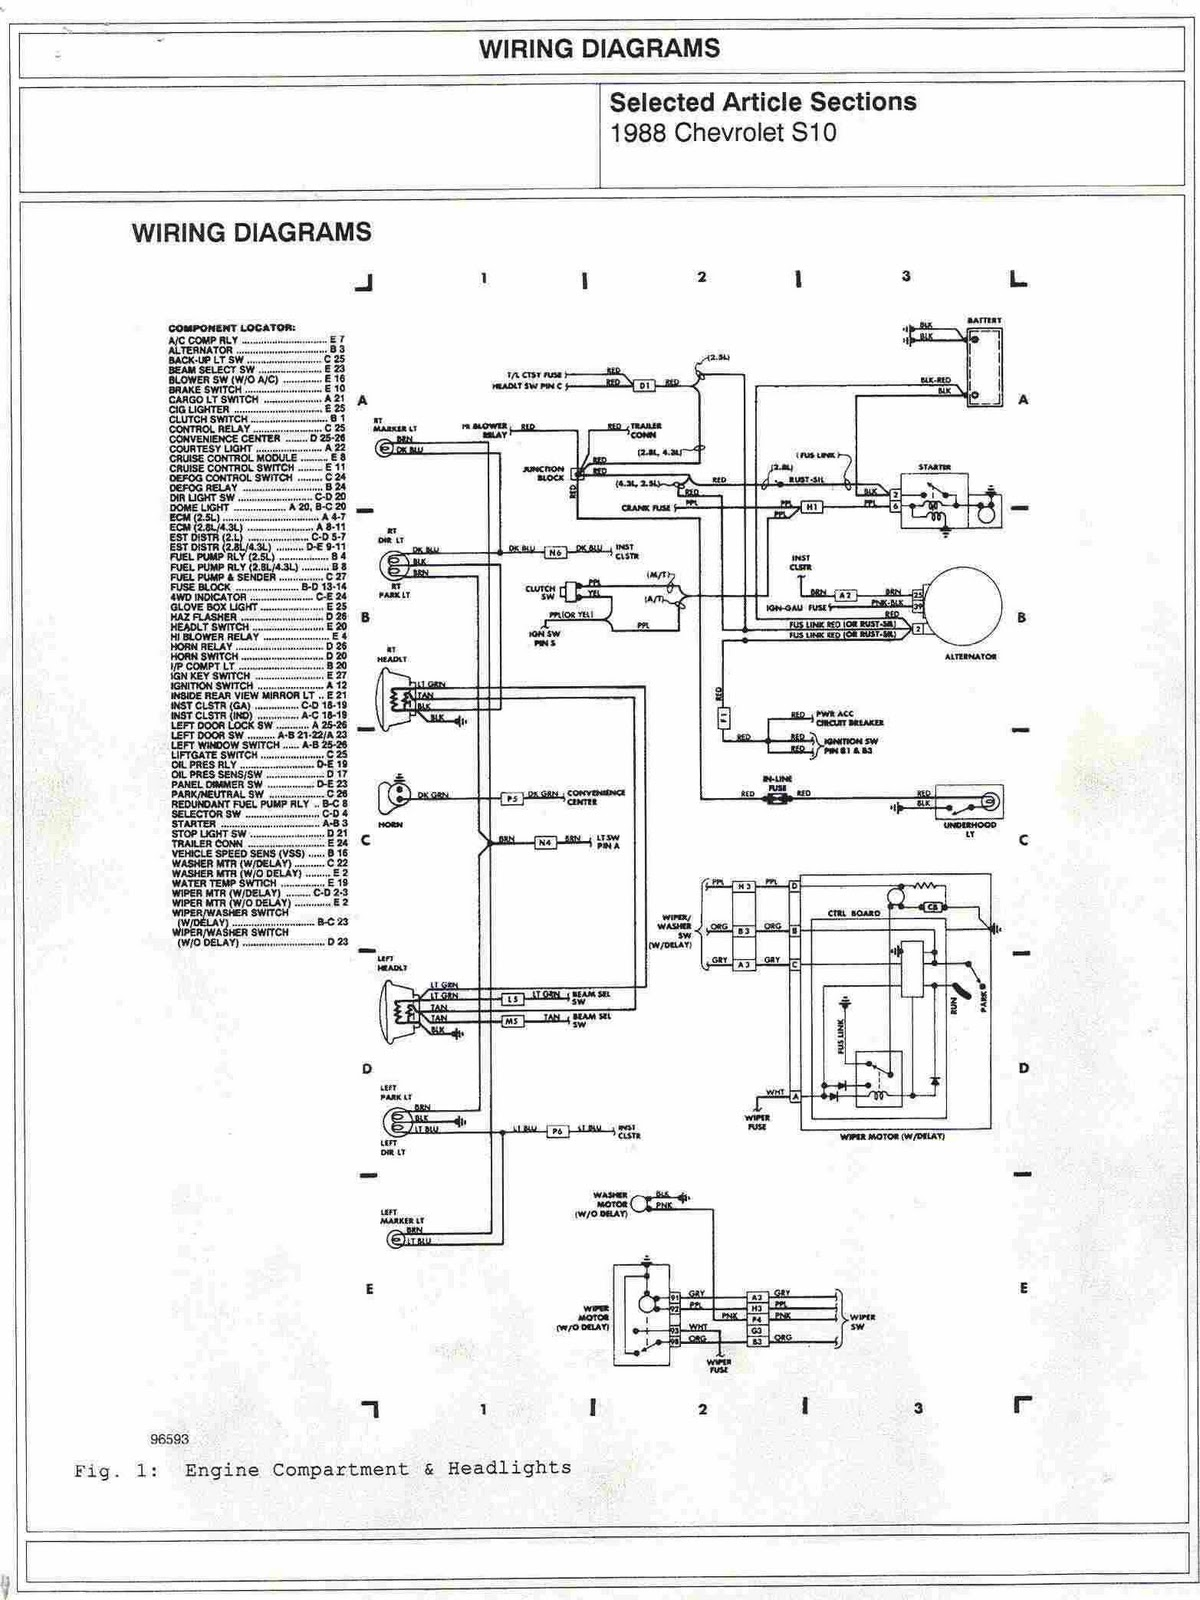 1987 Cadillac Eldorado Lock Wiring Diagram 42 C2 Schematic Simonand 1988 Chevrolet S10 Engine Compartment And Headlights